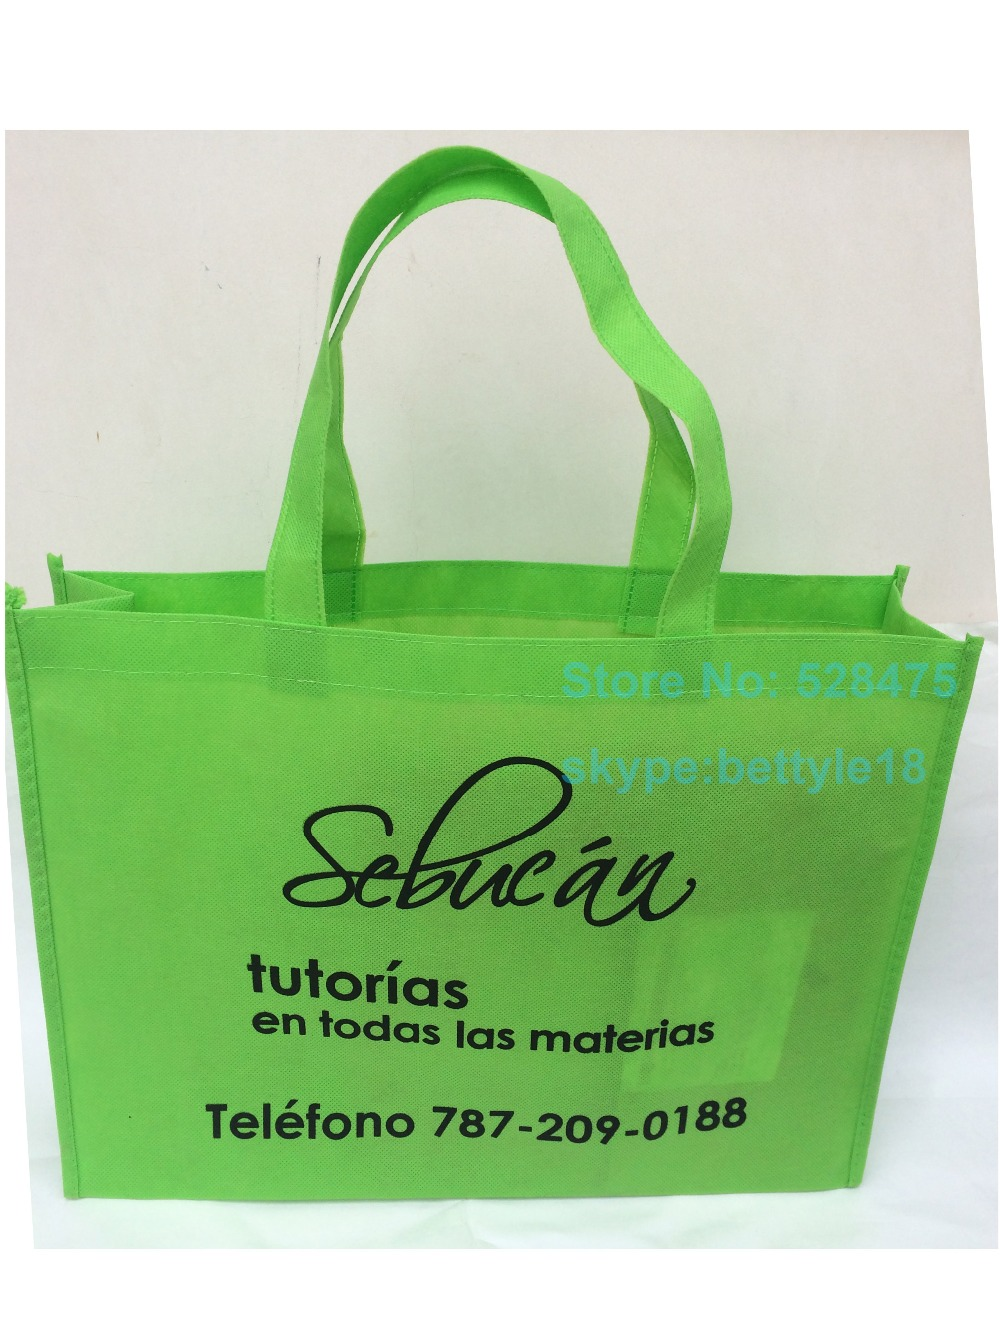 8b0ad40aaa 500pcs lot reusable grocery 20x25x8cm non woven shopping bags custom  printing company brand logo promotional gift tote bags -in Shopping Bags  from Luggage ...